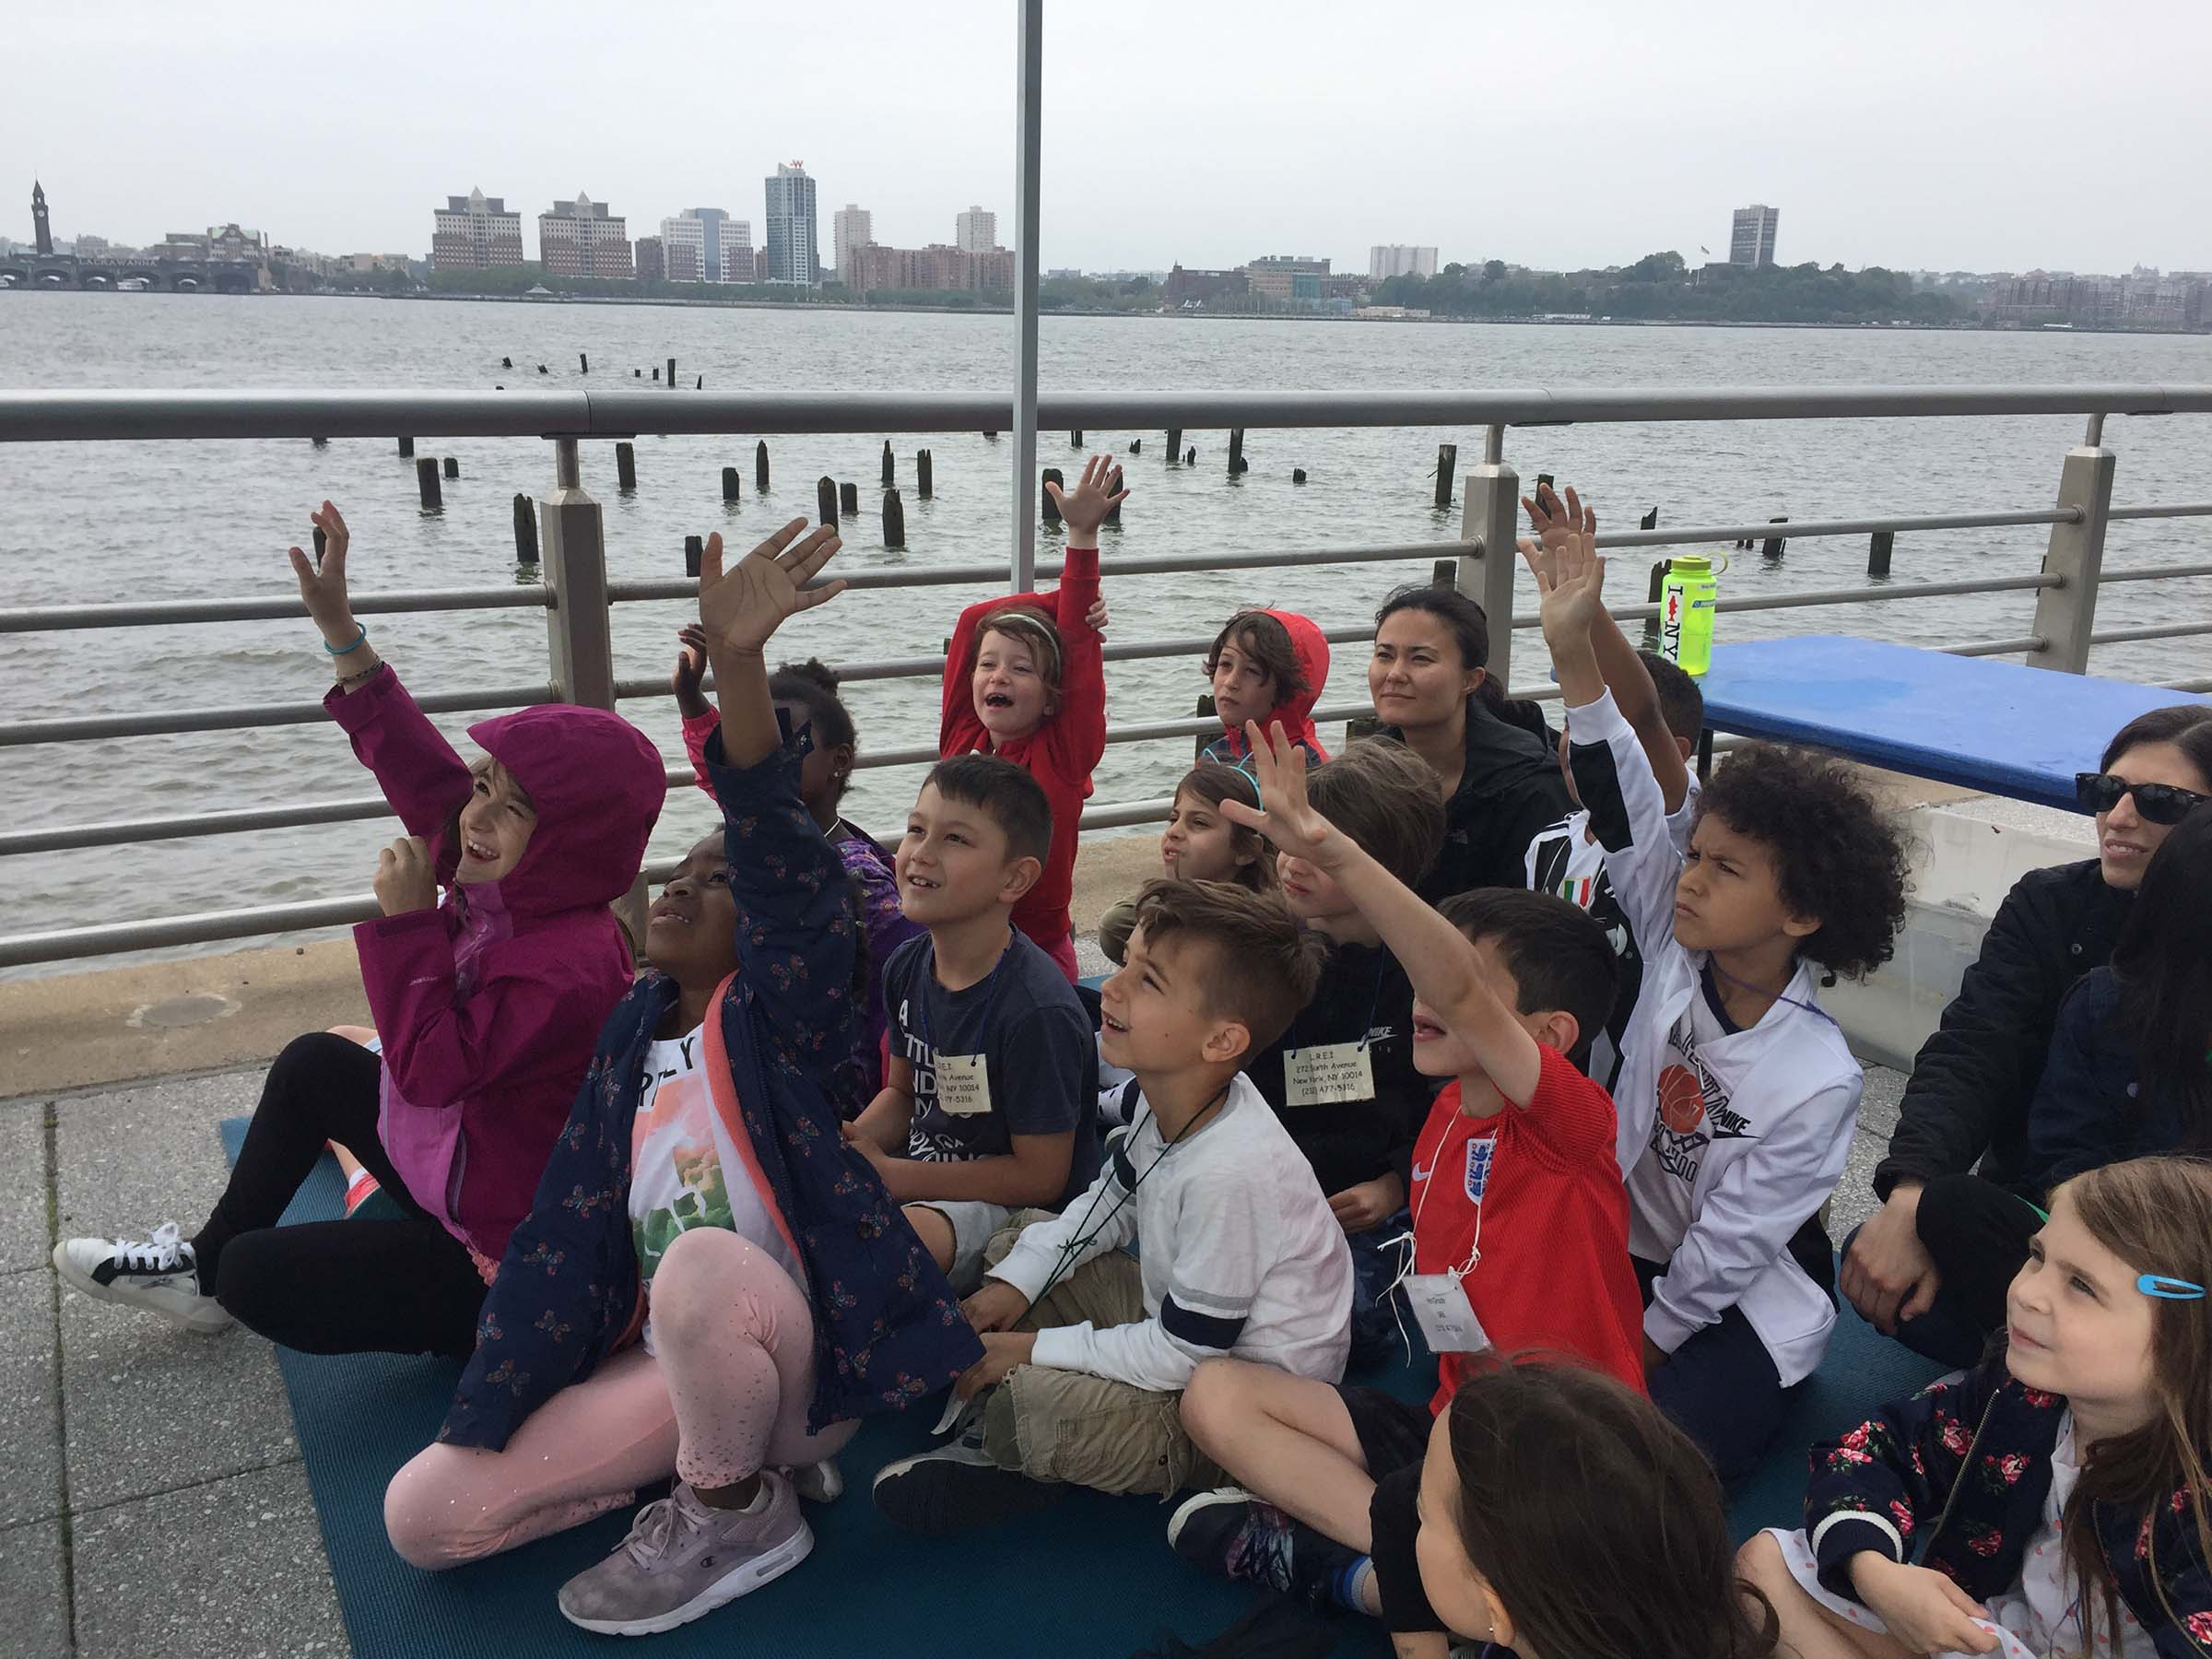 A group of students quickly raise their hands to answer the question about Hudson River Park